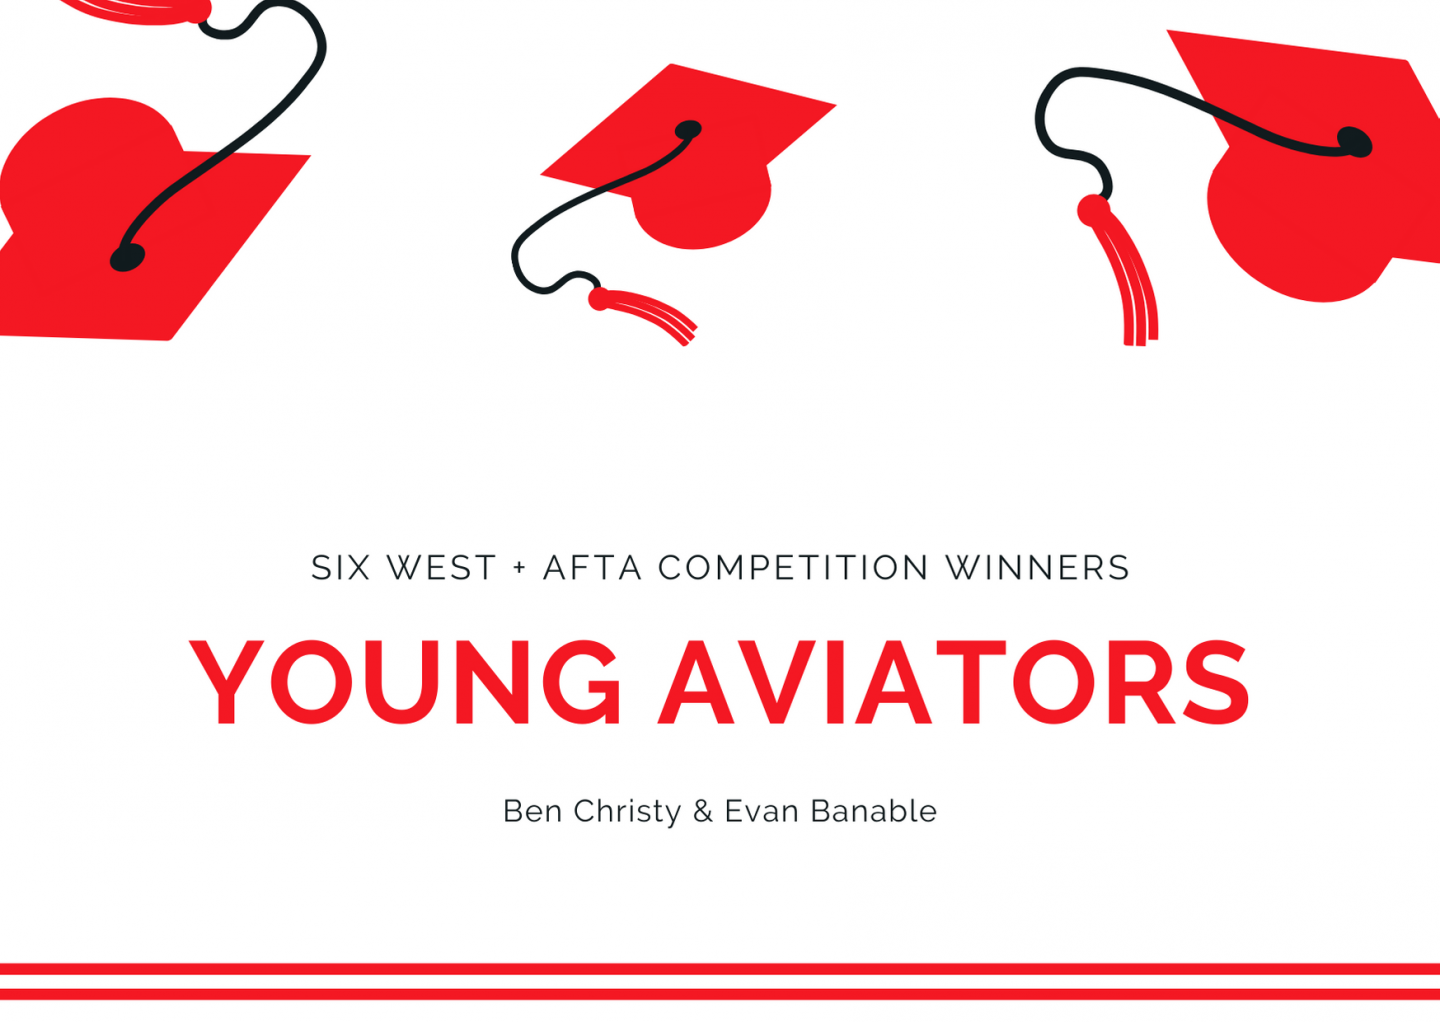 Six West AFTA Young Aviators Winning Entries